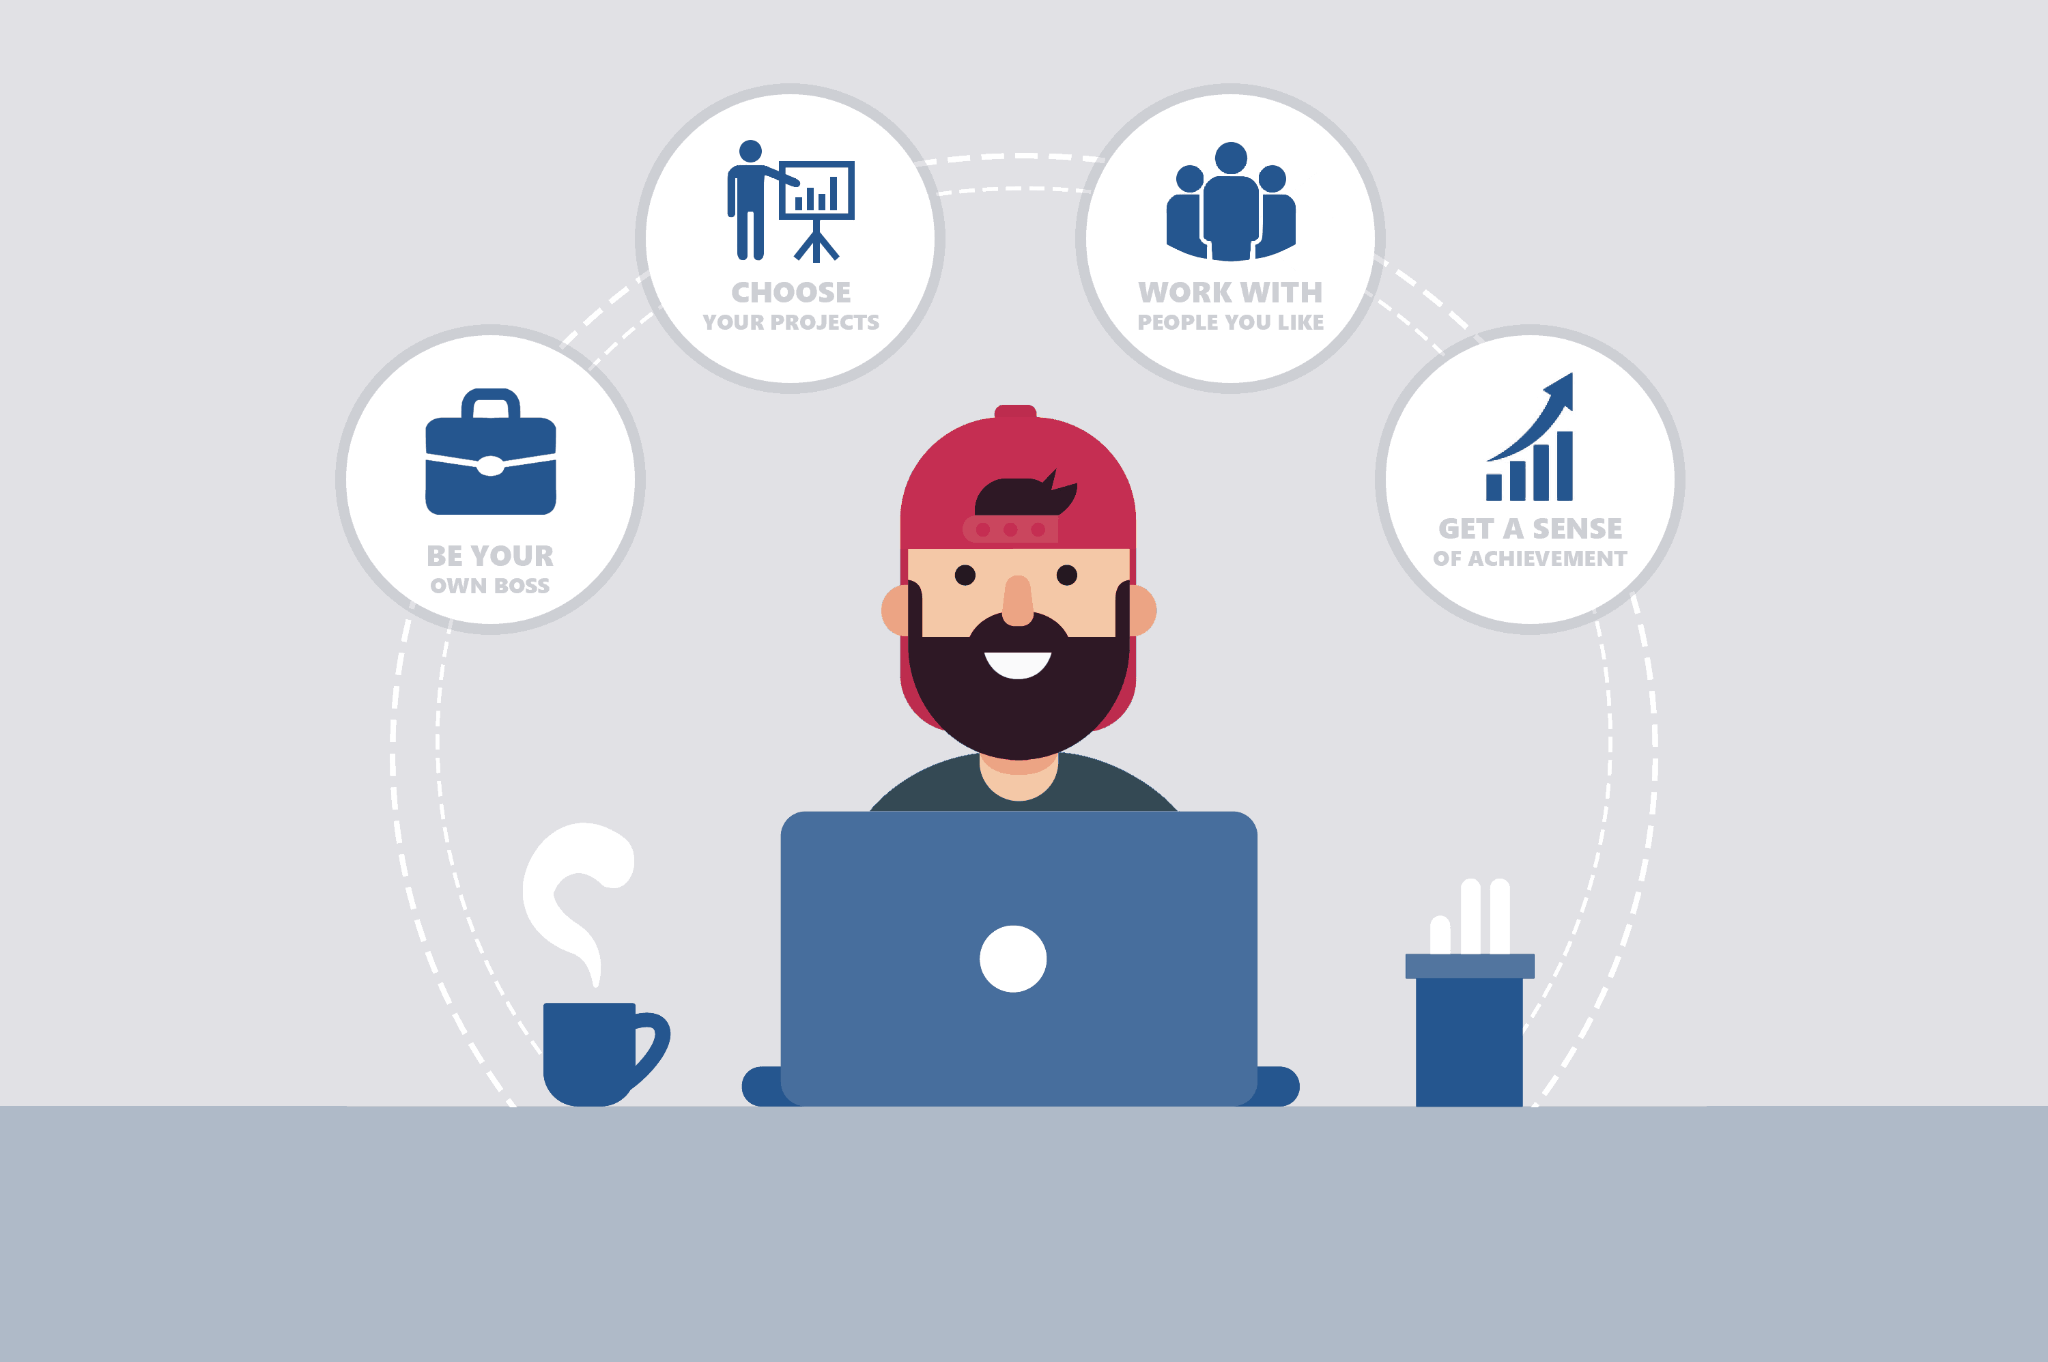 freelancer monetization has many benefits for a person wanting to montize online